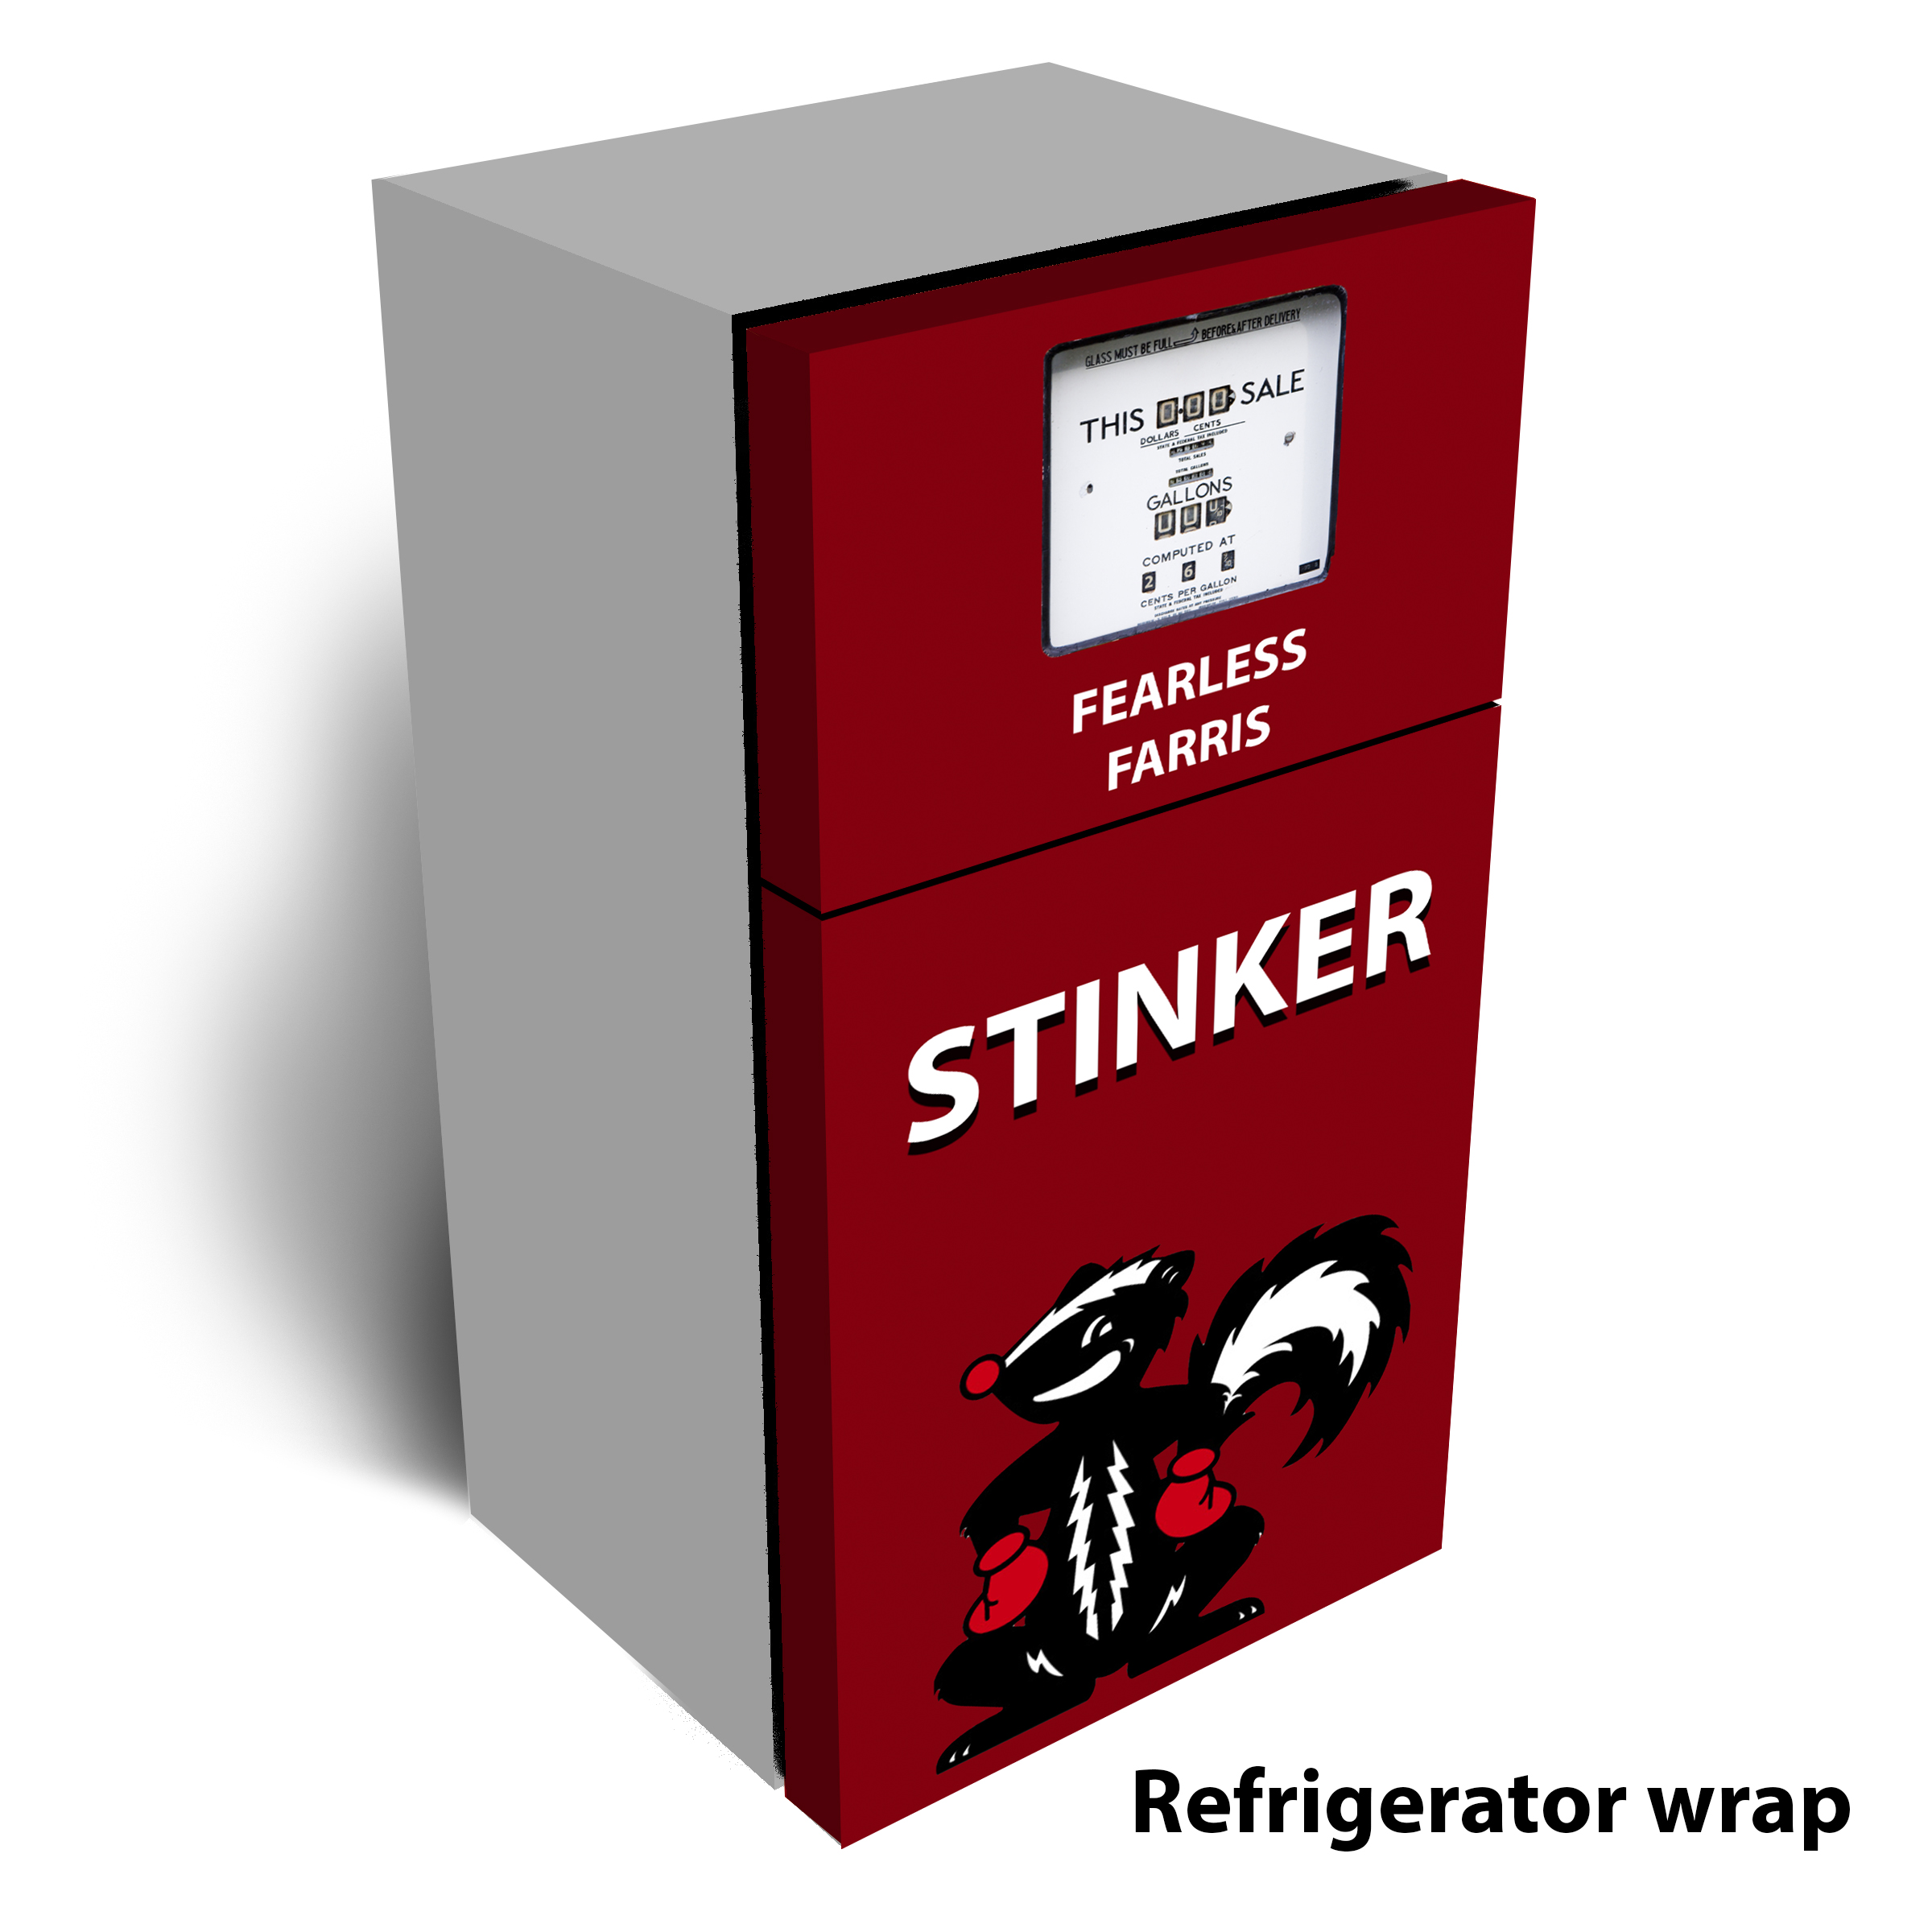 Stinker Gas Pump Refrigerator Wrap